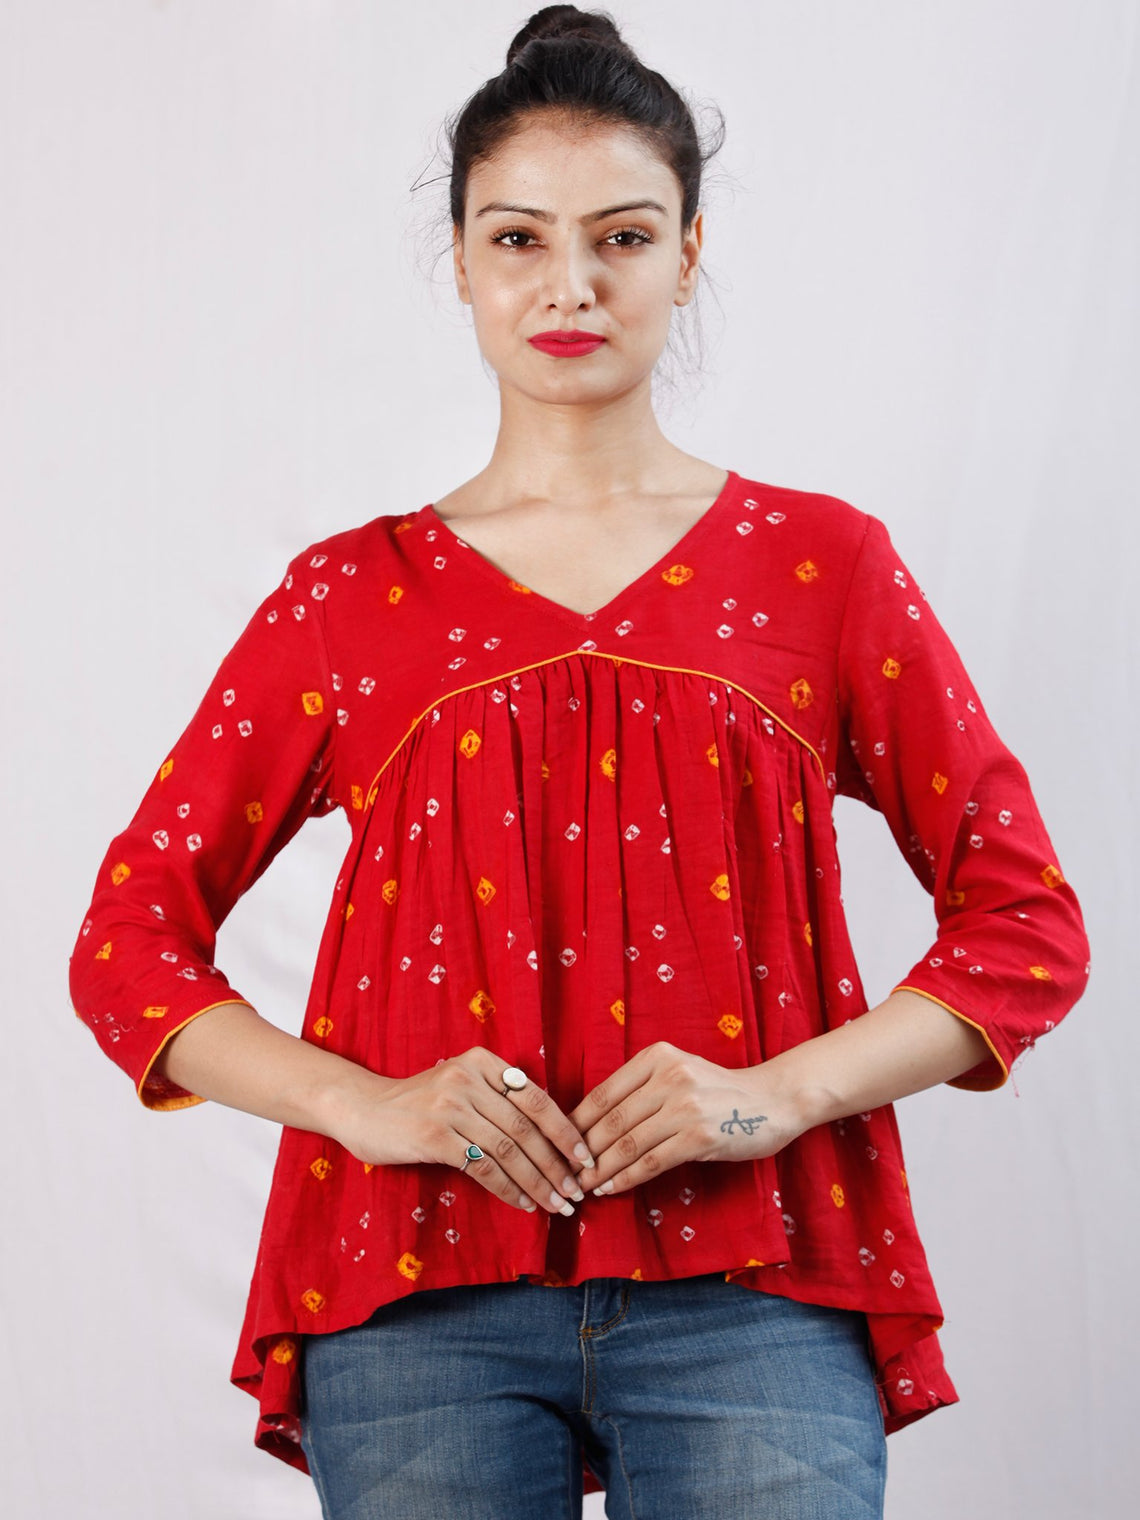 Red Bandhani Glace Cotton Top  - T51FXXX